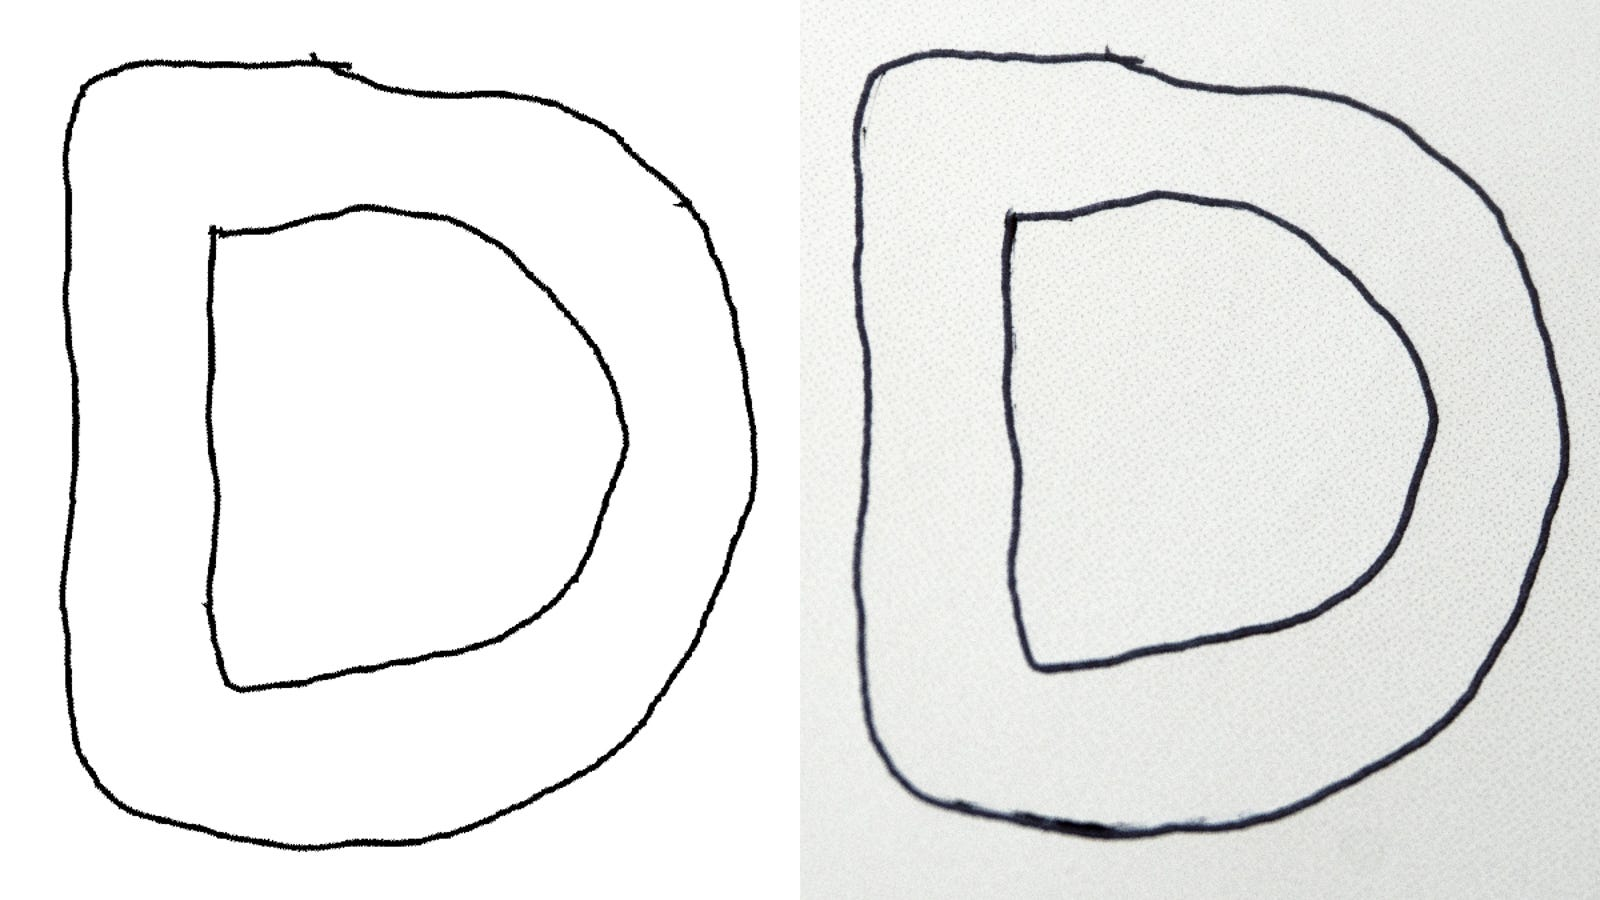 The digitized character in Adobe Illustrator (left) versus the original drawing in the Moleskine Paper Tablet (right).